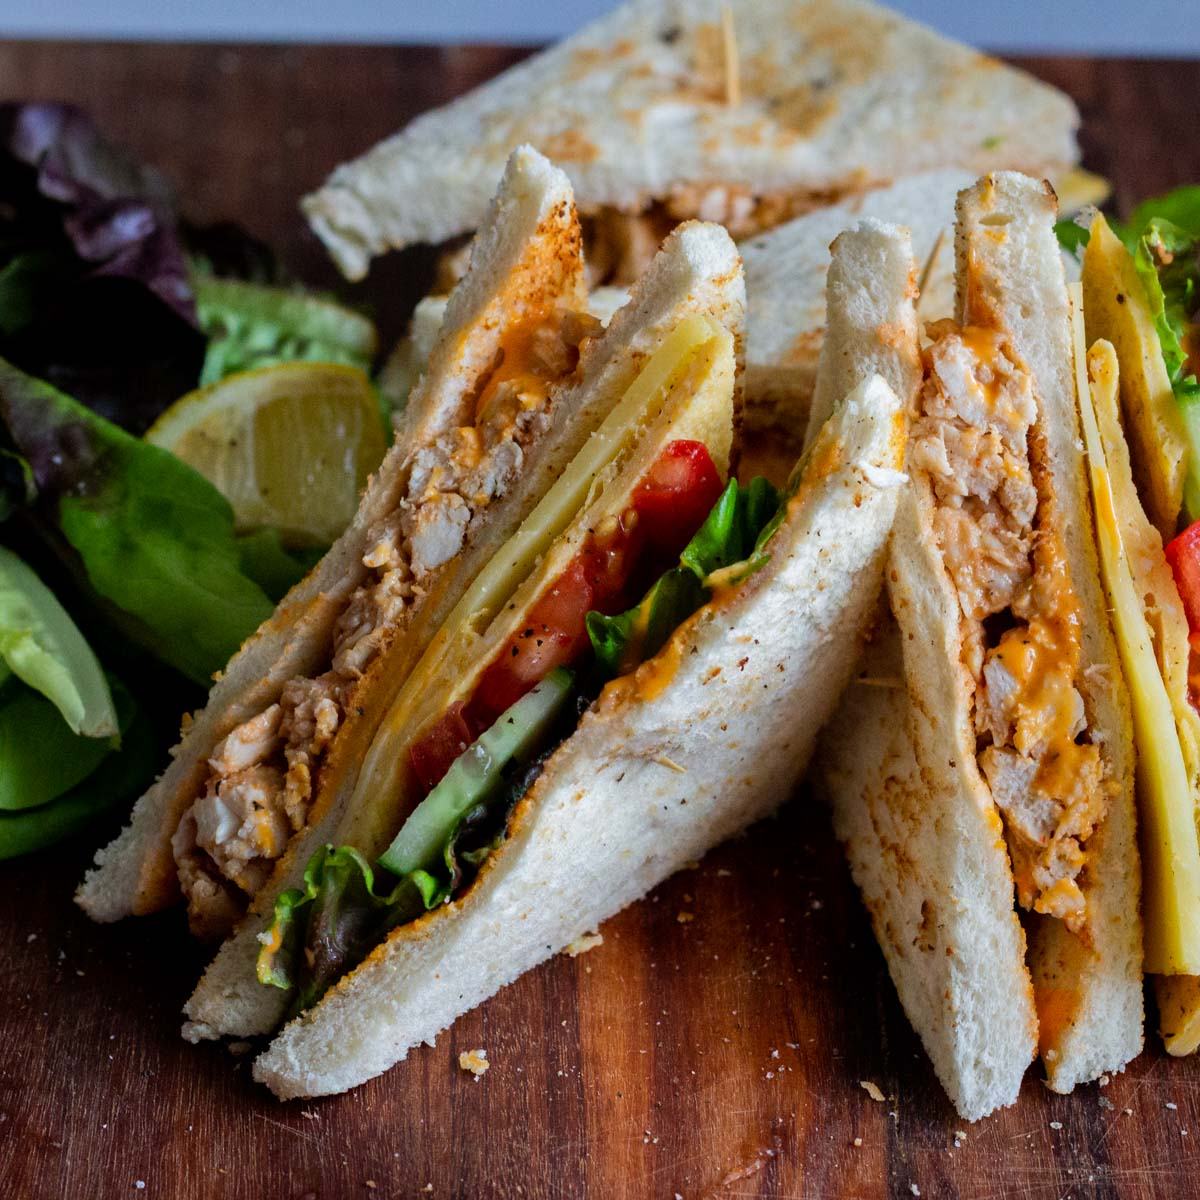 There are two chicken club sandwiches on a wooden chopping board. On the back of the sandwiches is lettuce, along with a lemon wedge.